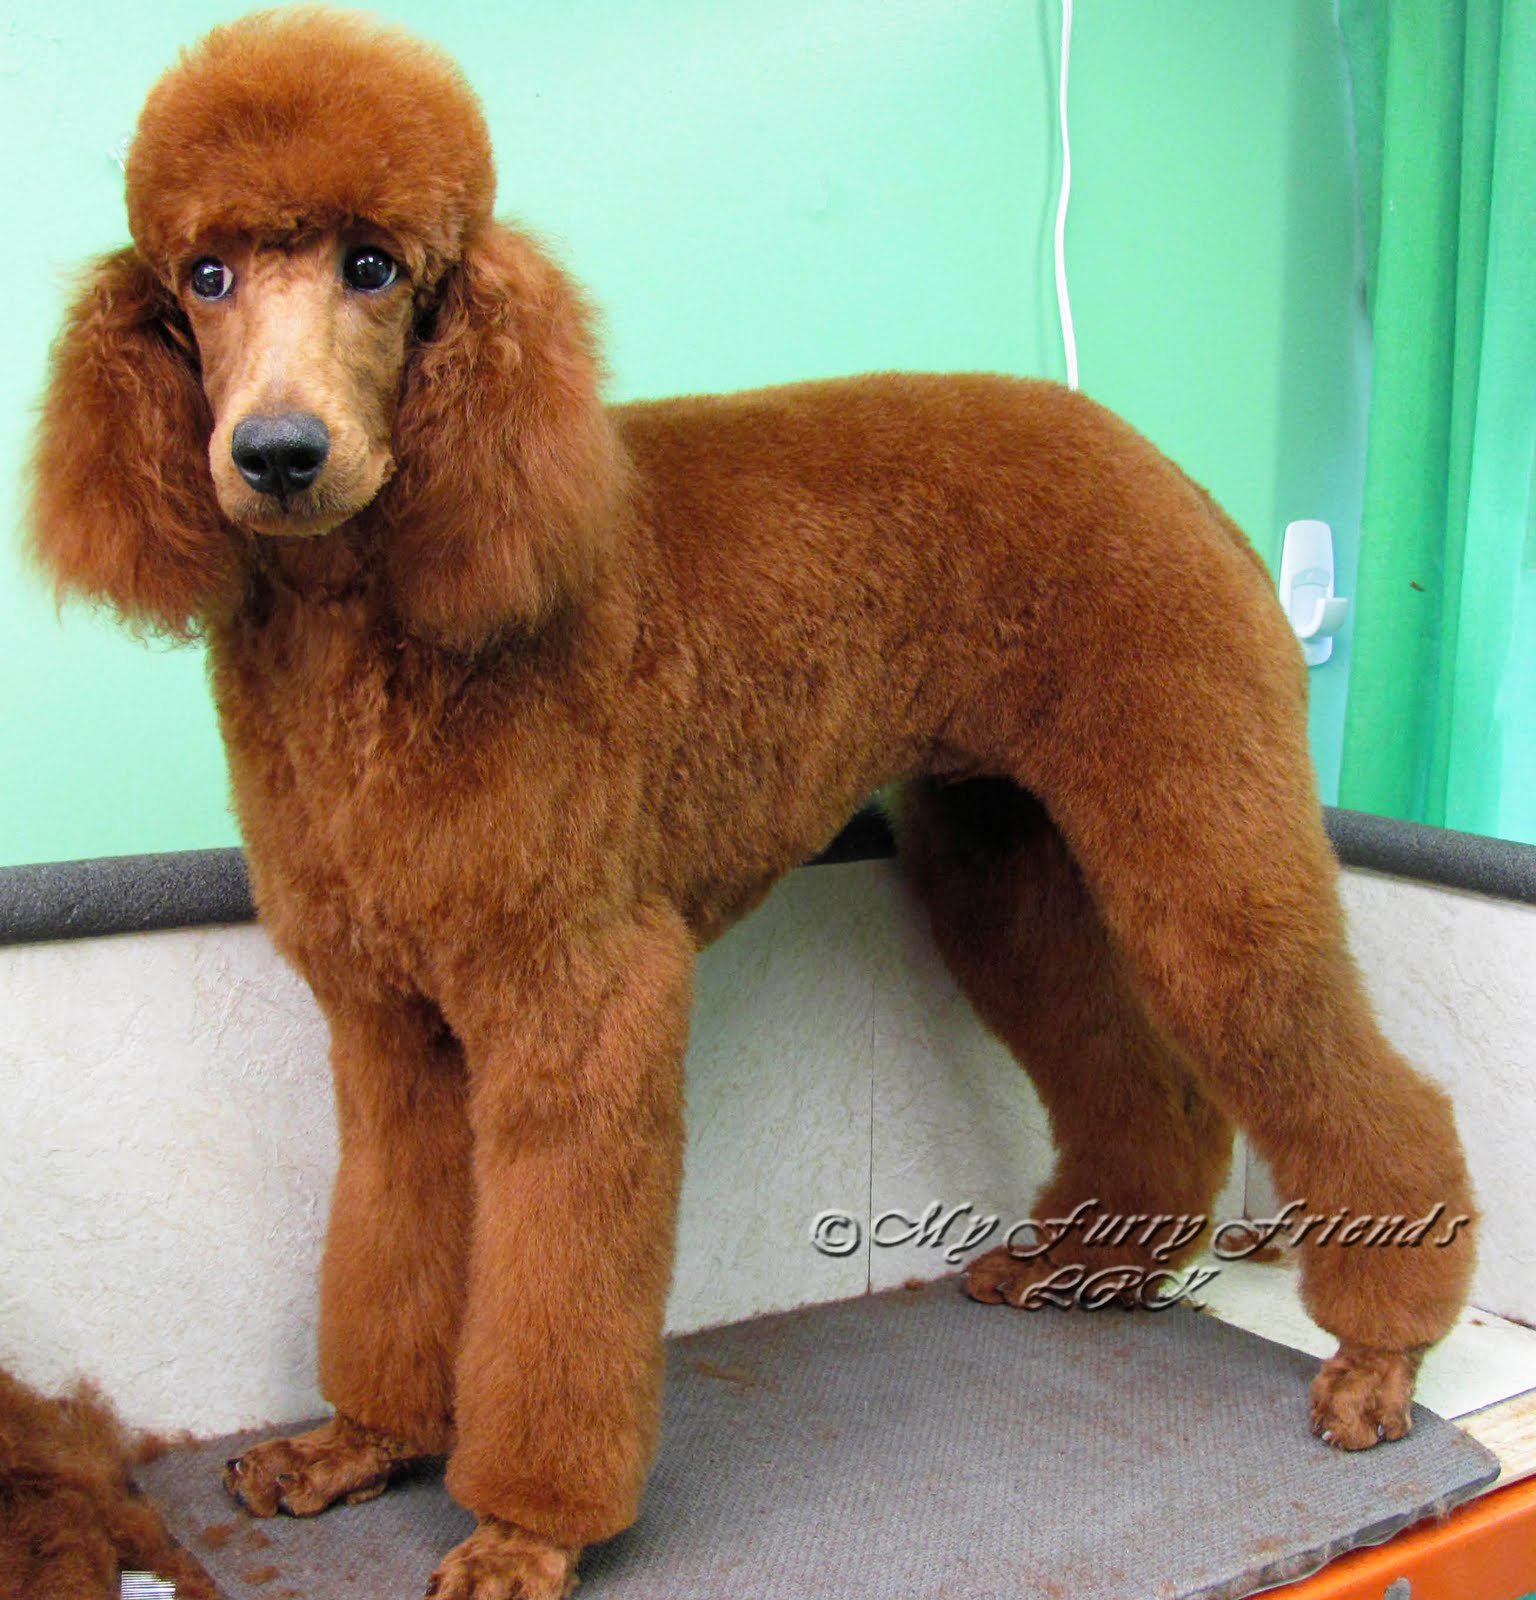 grooming your furry friend: does a poodle have to be groomed like